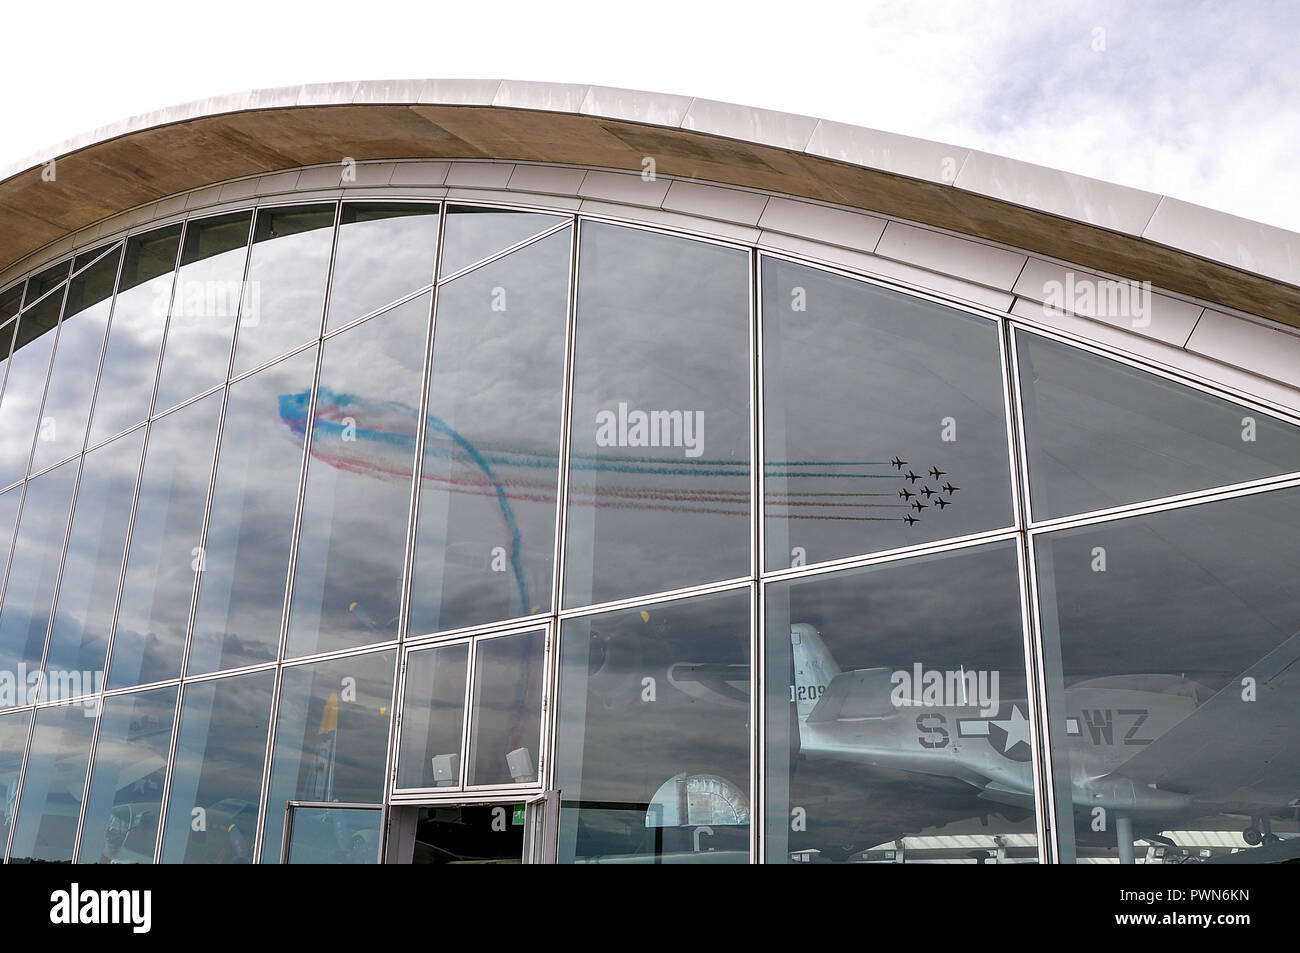 american-air-museum-at-imperial-war-museum-duxford-cambridgeshire-uk-red-arrows-display-team-reflected-in-glass-frontage-of-building-PWN6KN.jpg